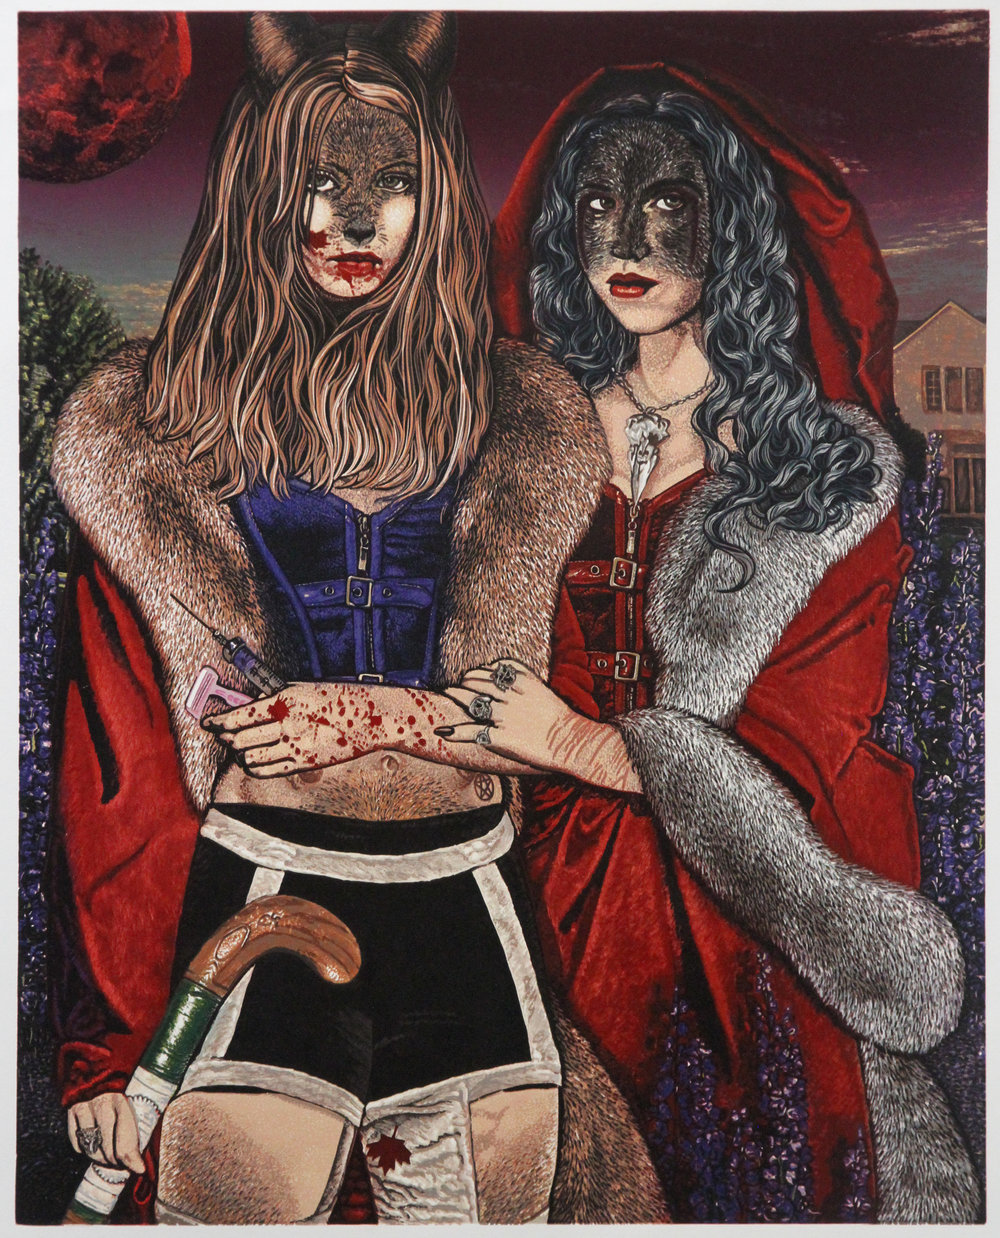 Jazmina Cininas,  Blood Sisters , 2016, Reduction linocut and second block, Paper: 78 x 63 cm, Image: 69.5 x 56cm, Edition of 15